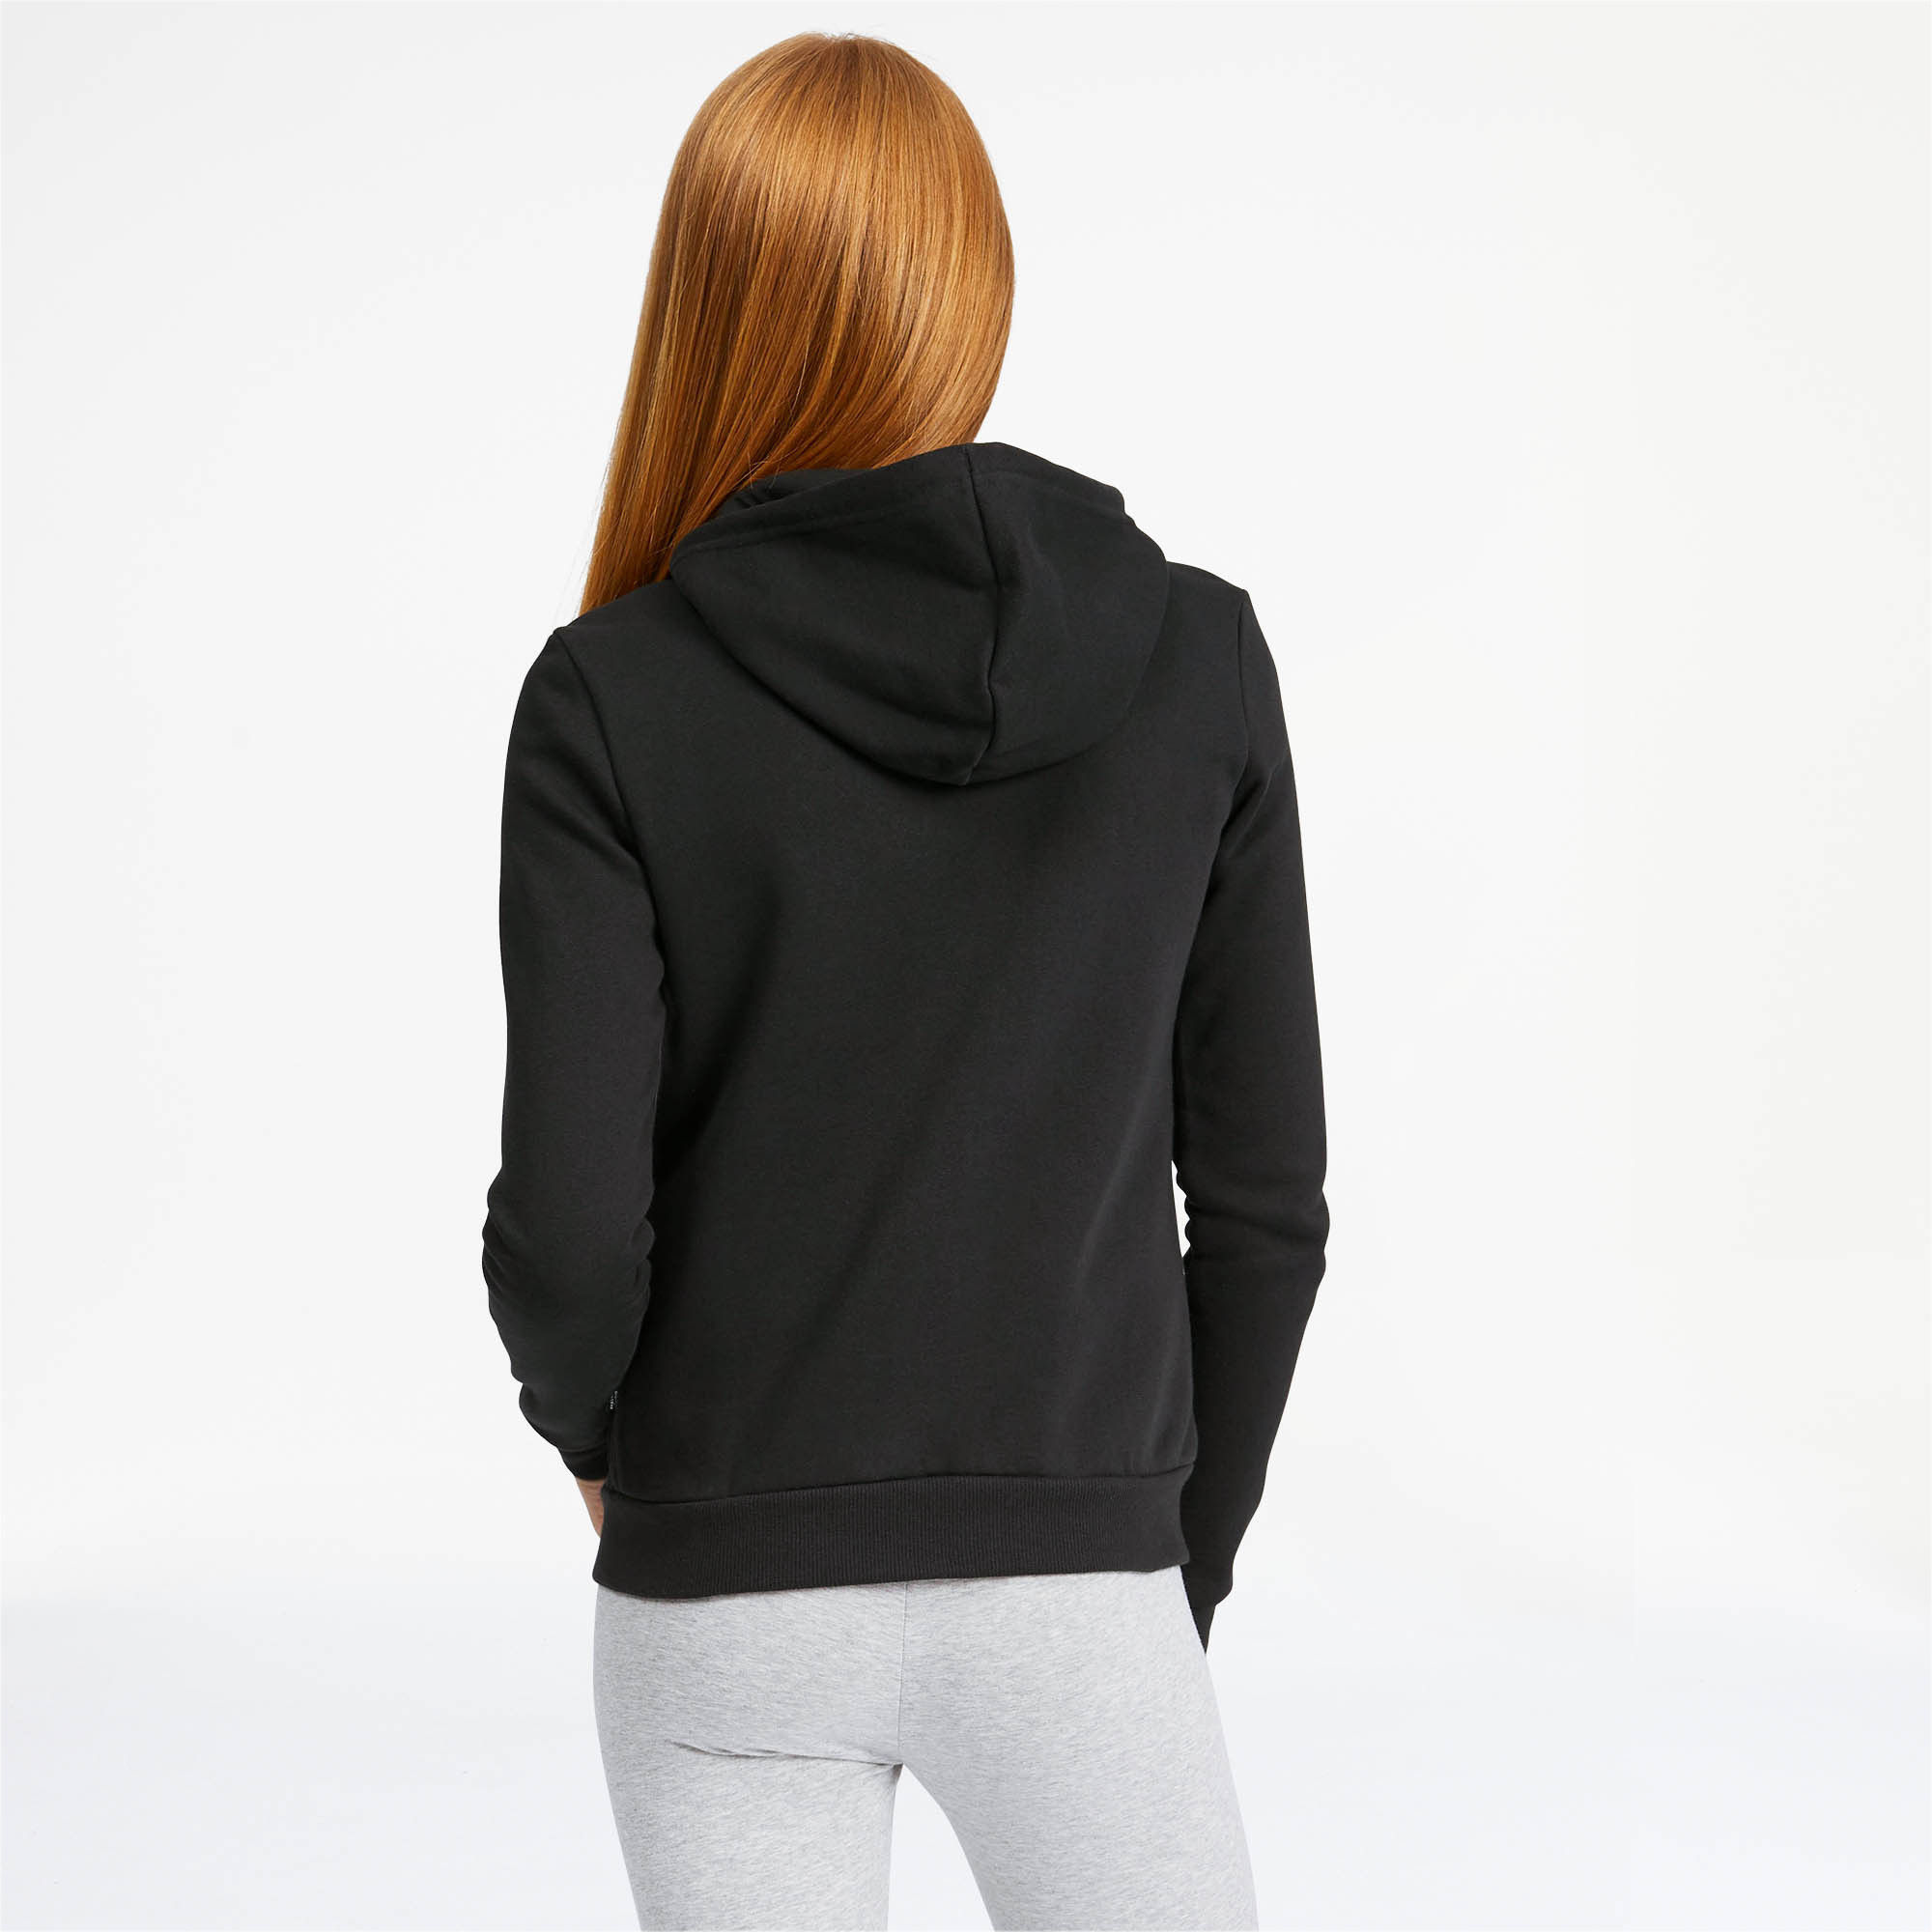 PUMA-Women-039-s-Essential-Fleece-Hooded-Jacket-Women-Sweat-Basics thumbnail 5